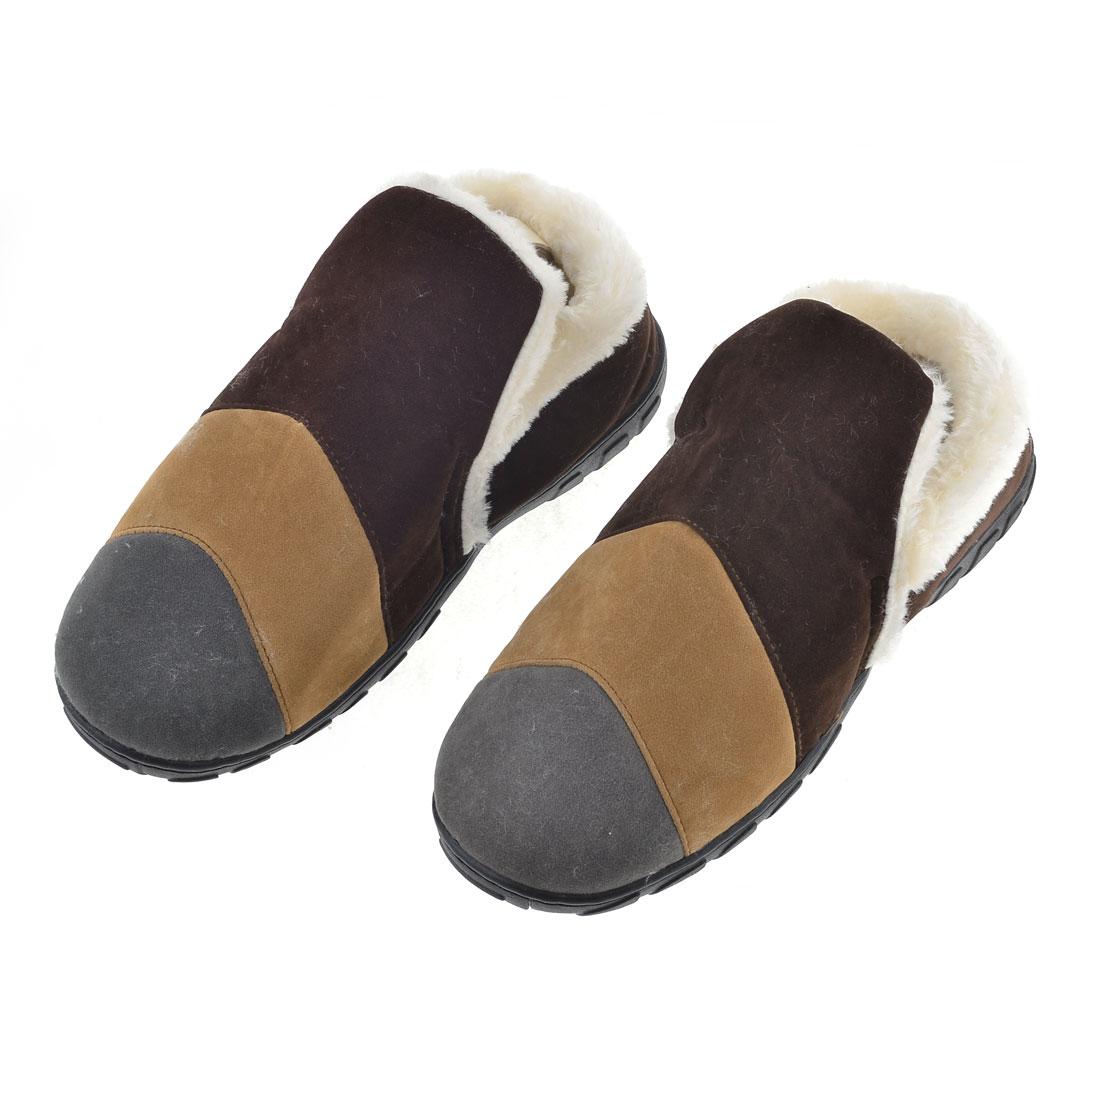 Men Colorful Stripes Pattern Plush Lining Winter Warm Slippers Pair